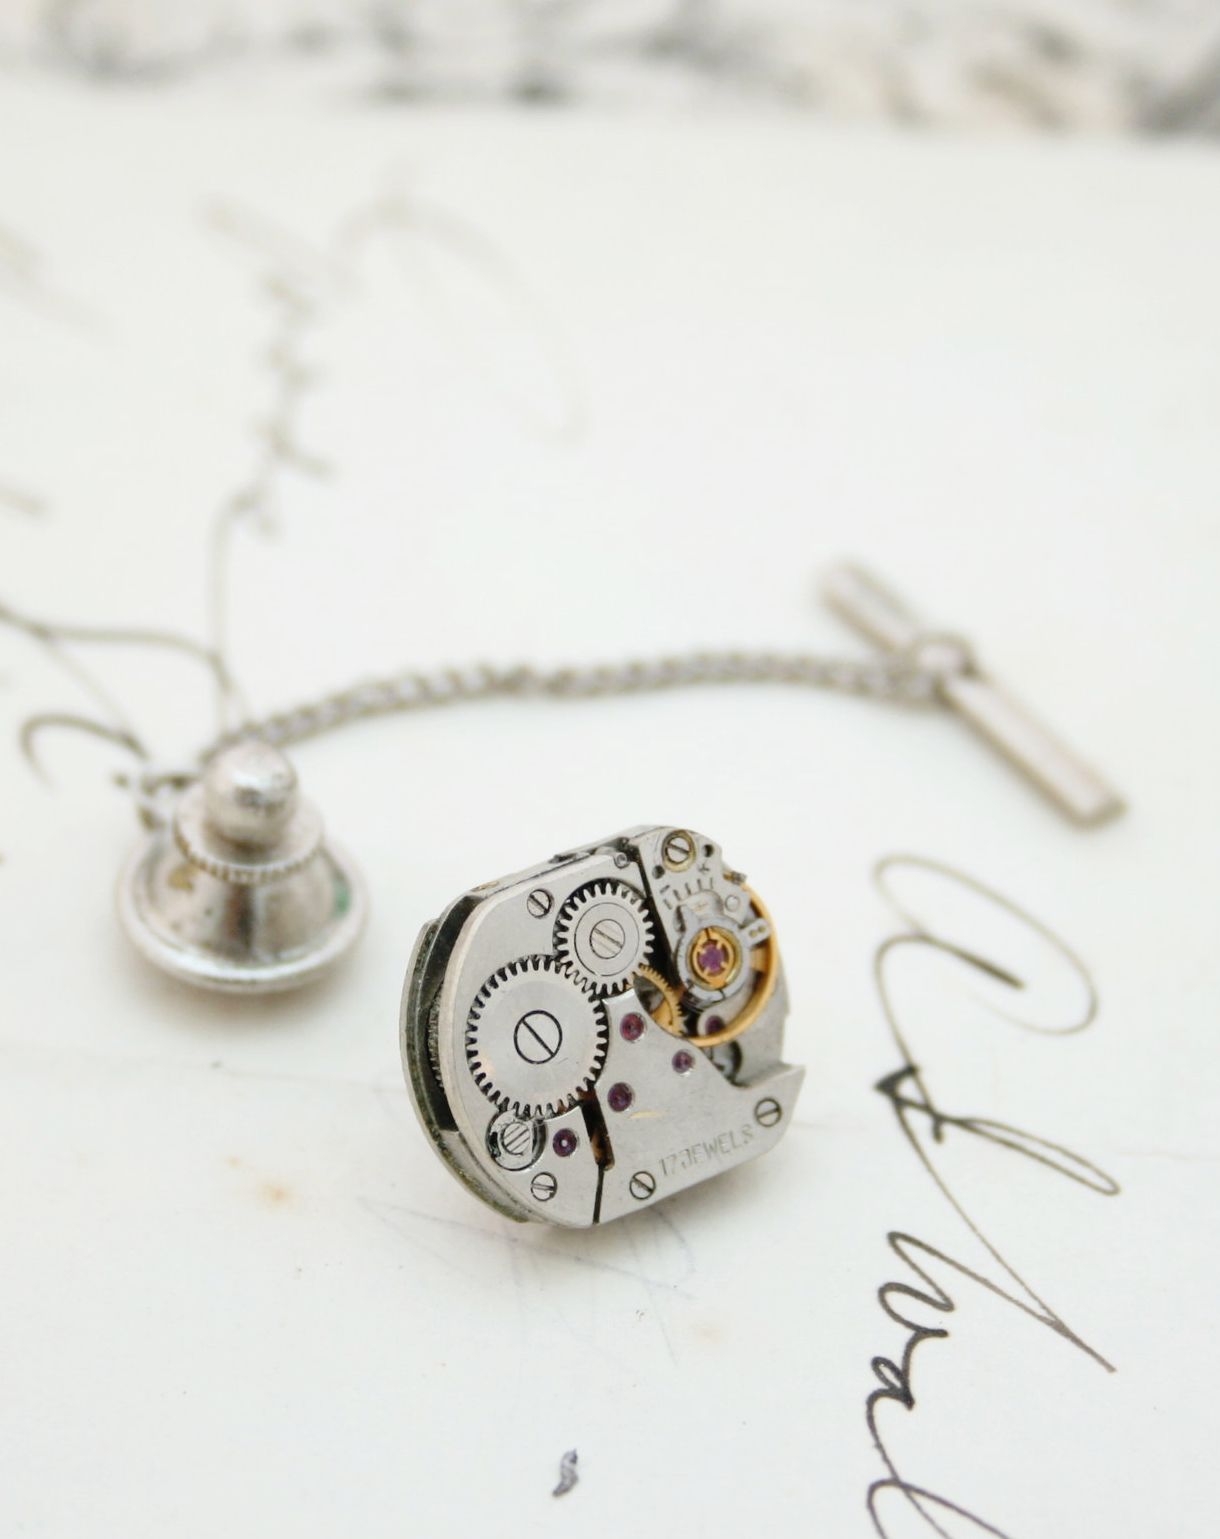 Steampunk Tie Tack with Watch Movement, Clutch and Chain